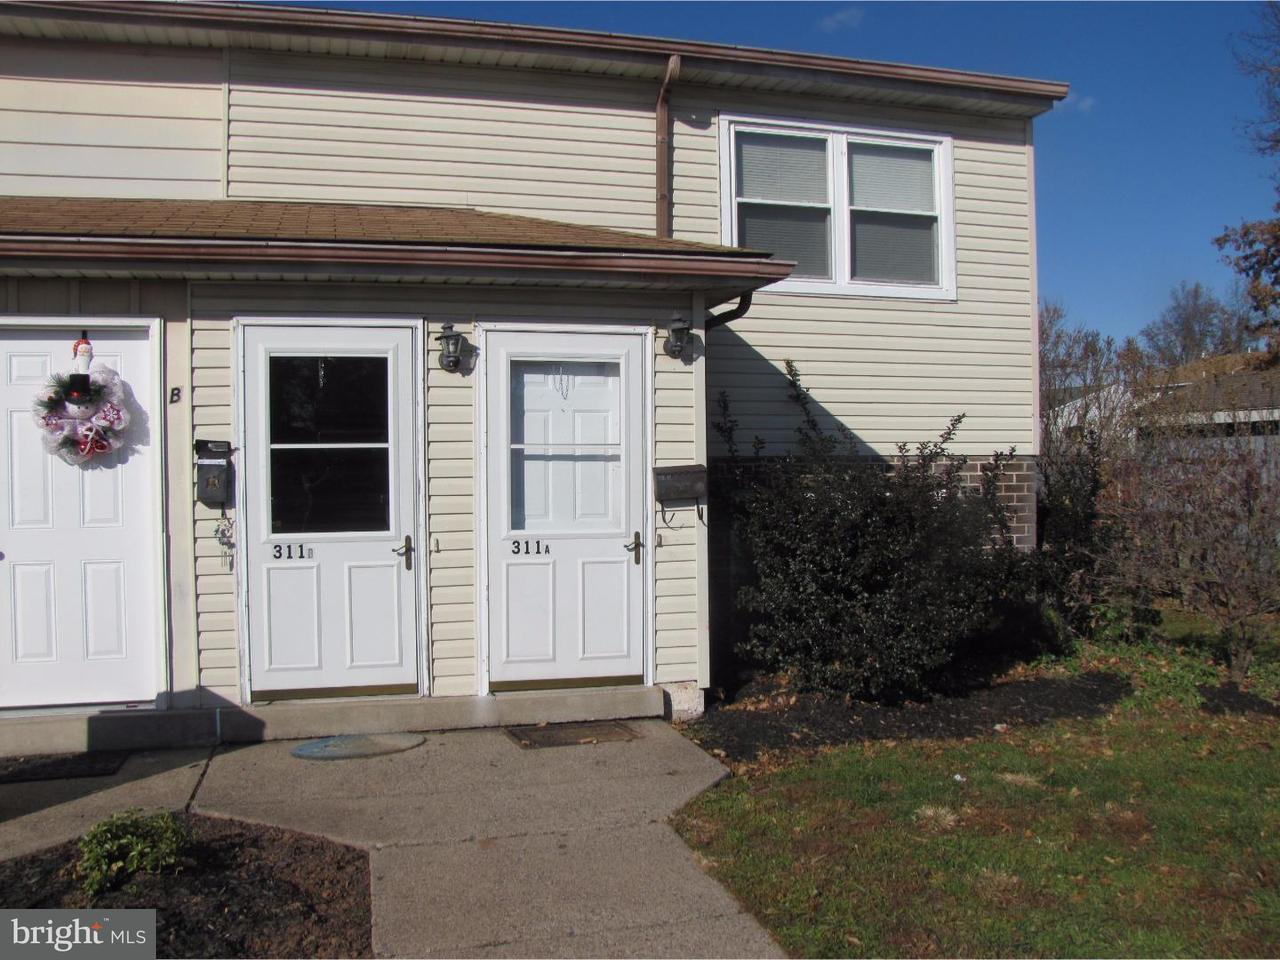 Single Family Home for Rent at 311 FORGE RD ##B East Greenville, Pennsylvania 18041 United States